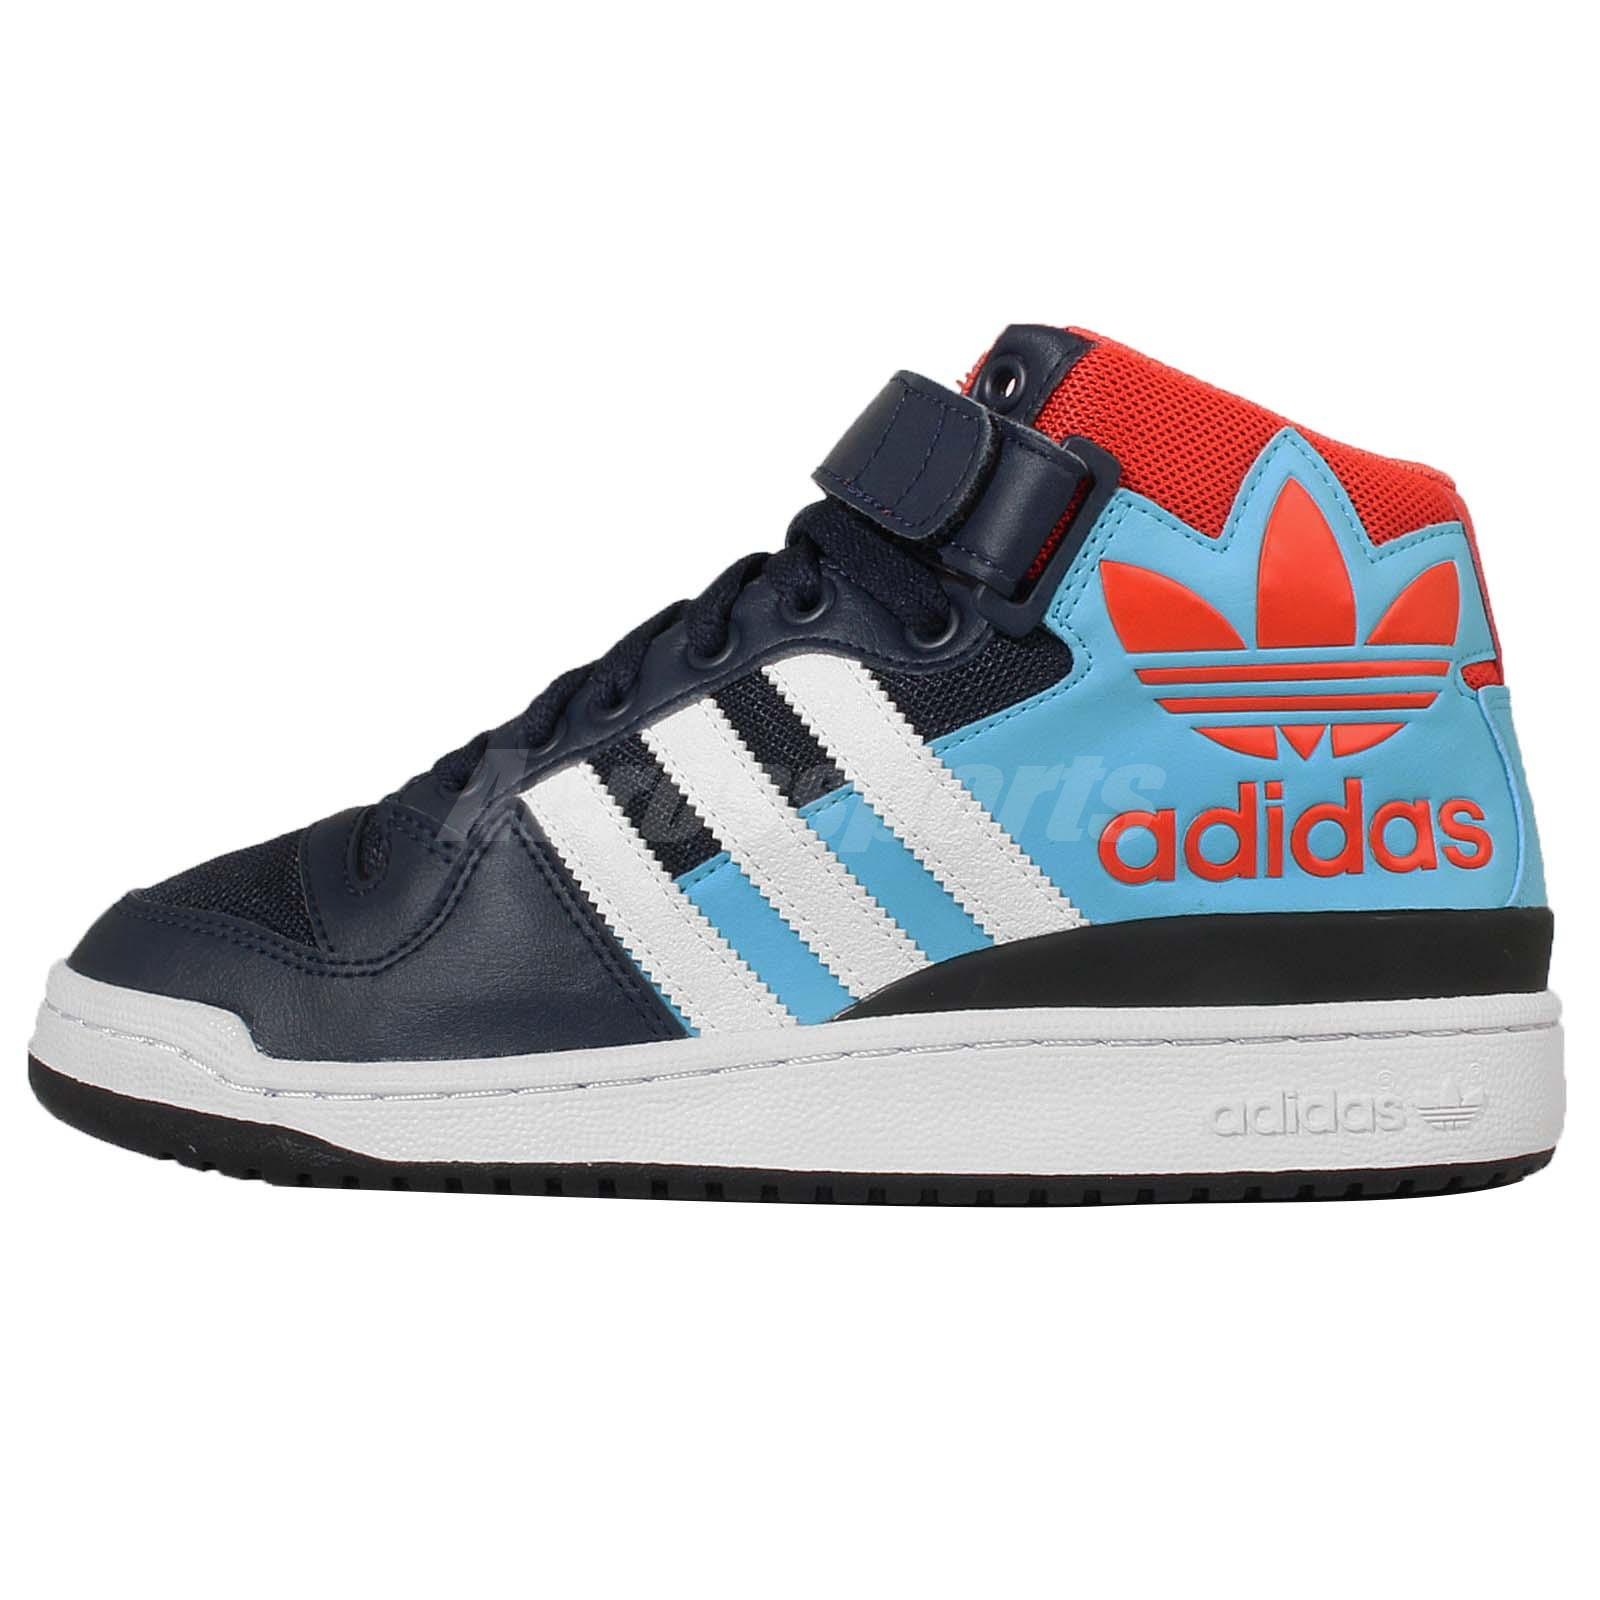 best website 117a4 9f169 cheapest adidas forum mid rs shoes coupon cb4c1 60003